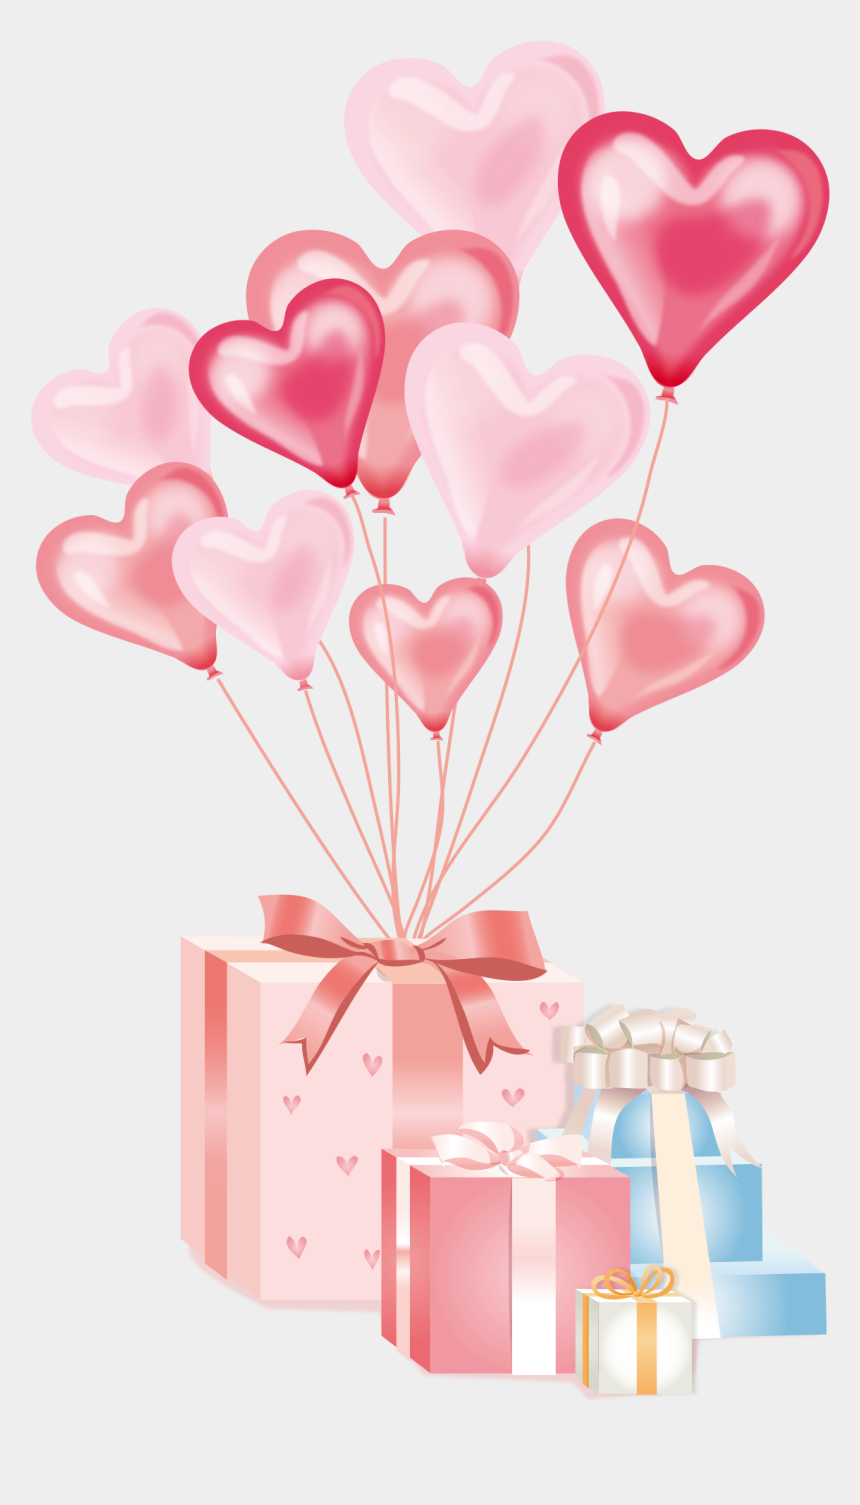 birthday presents clipart, Cartoons - Birthday Gifts Wallpapers Source